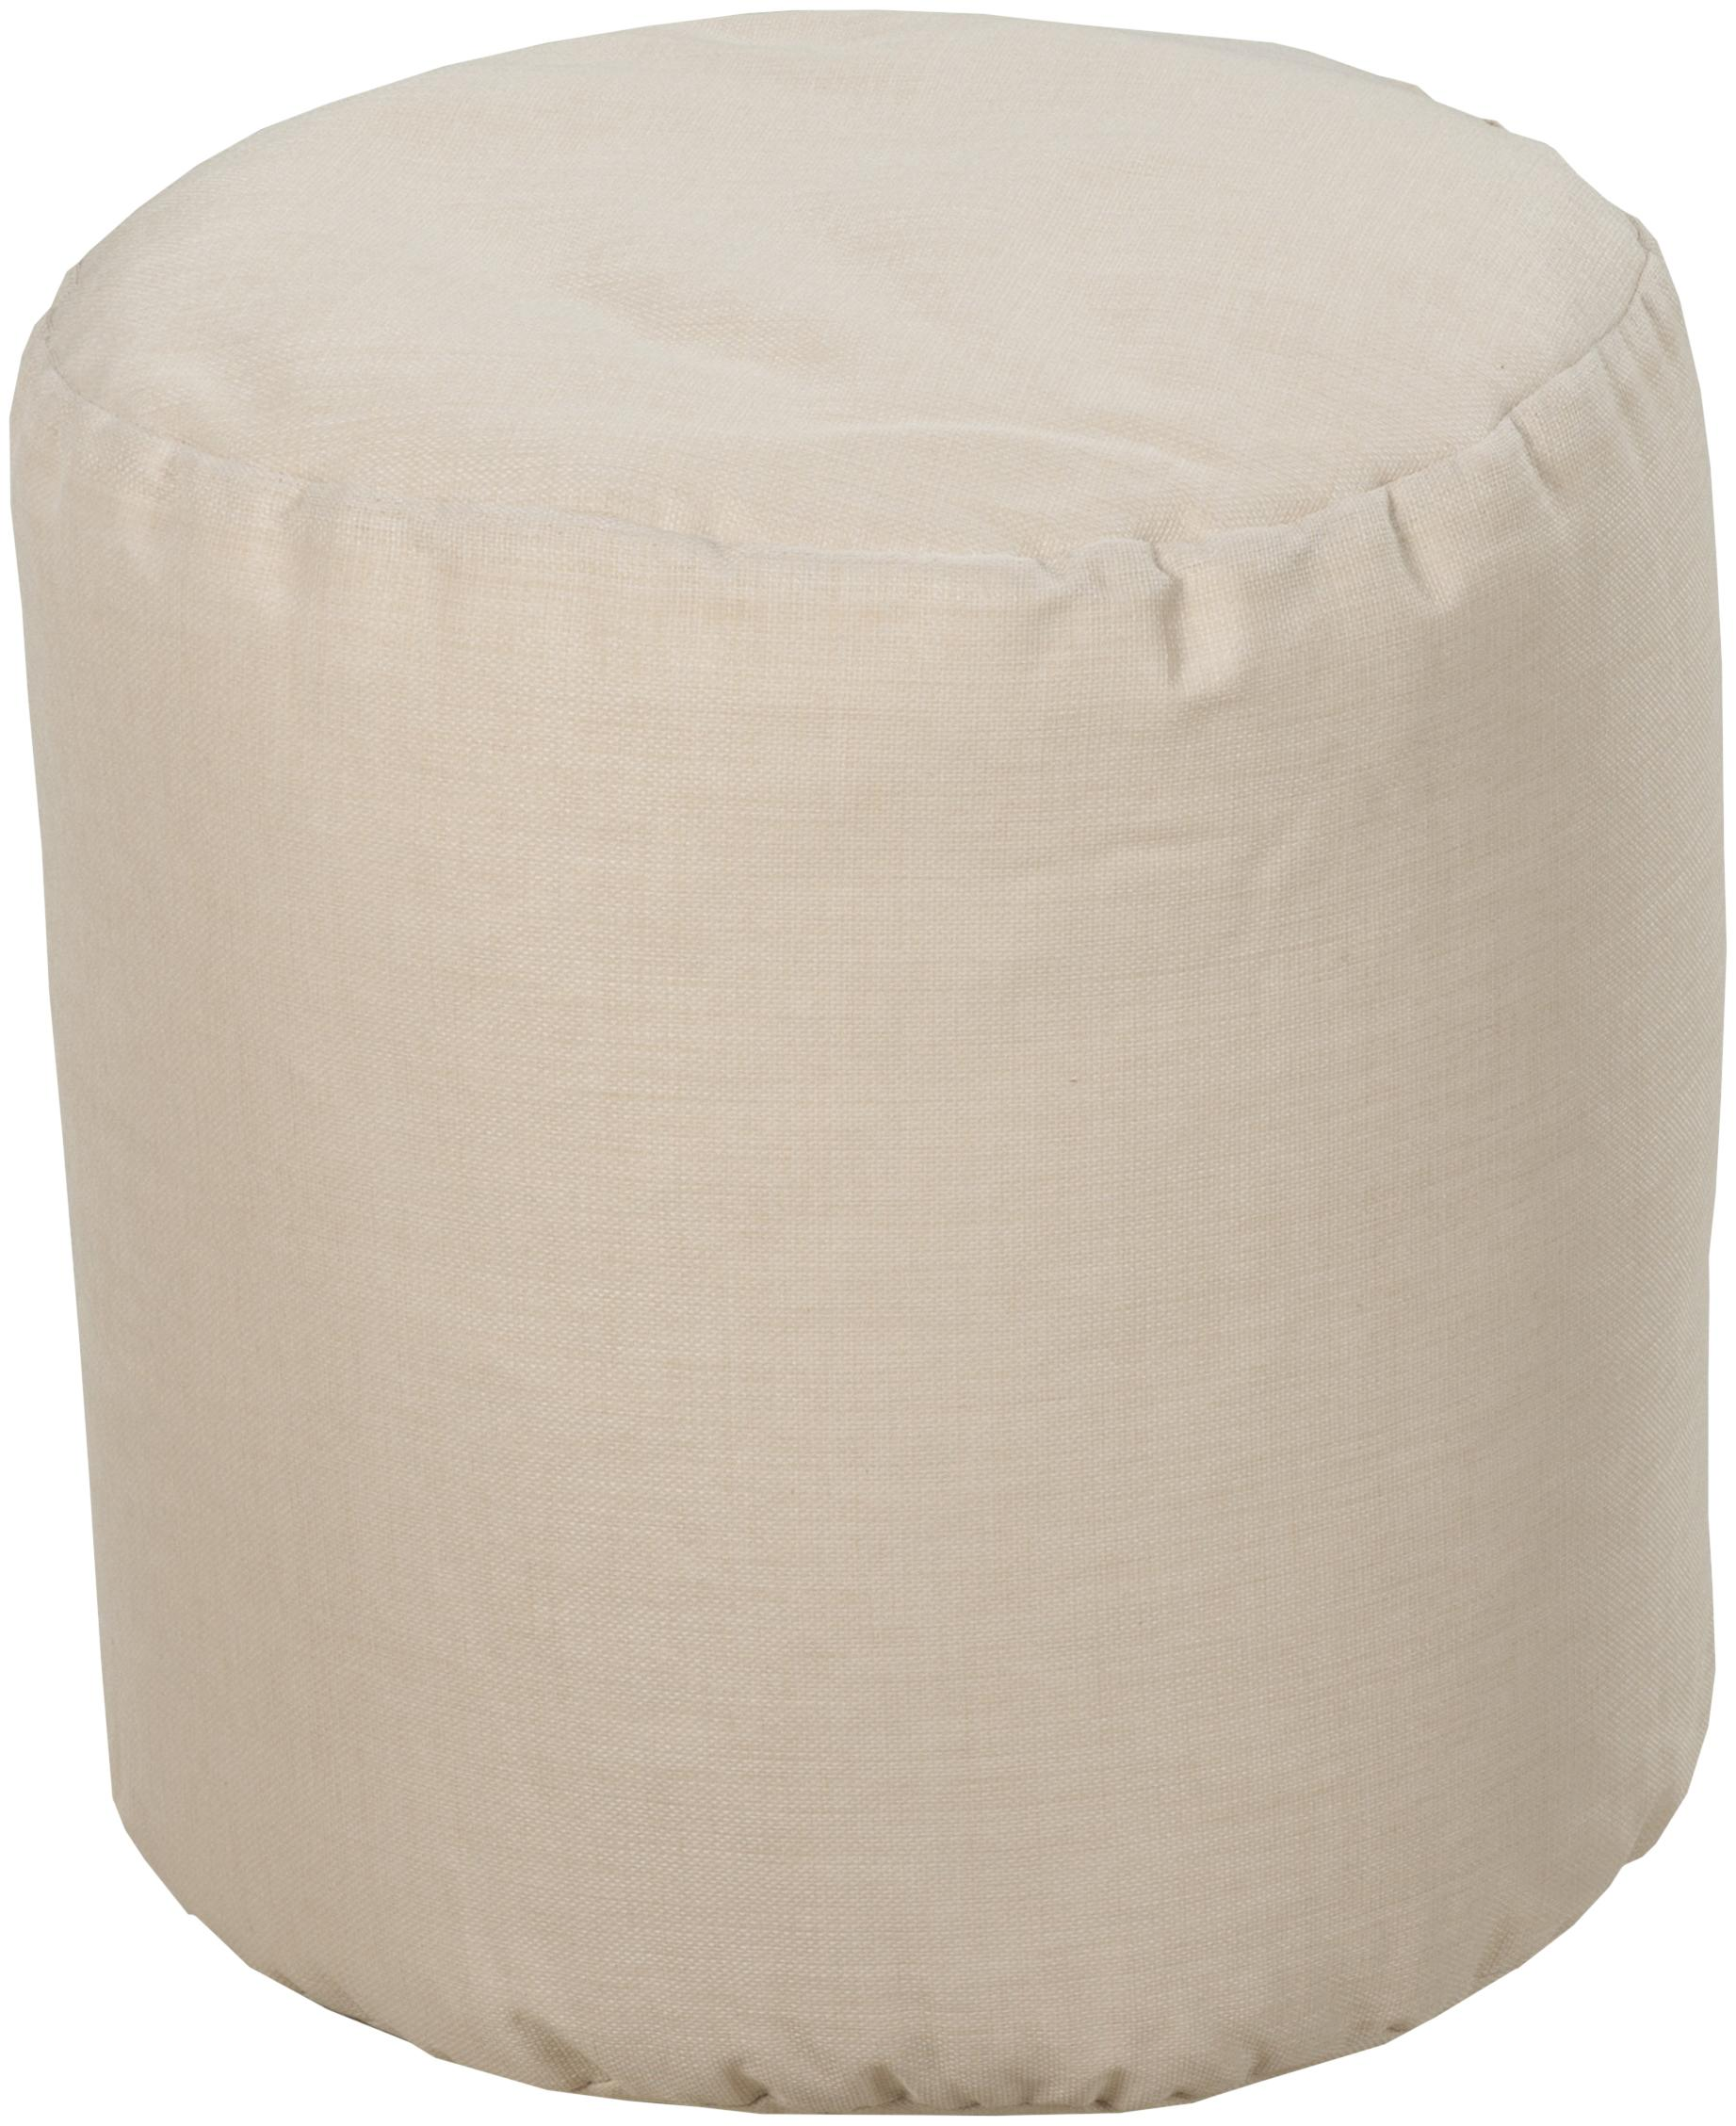 "Surya Rugs Poufs Round 18"" Pouf - Item Number: POUF-106"